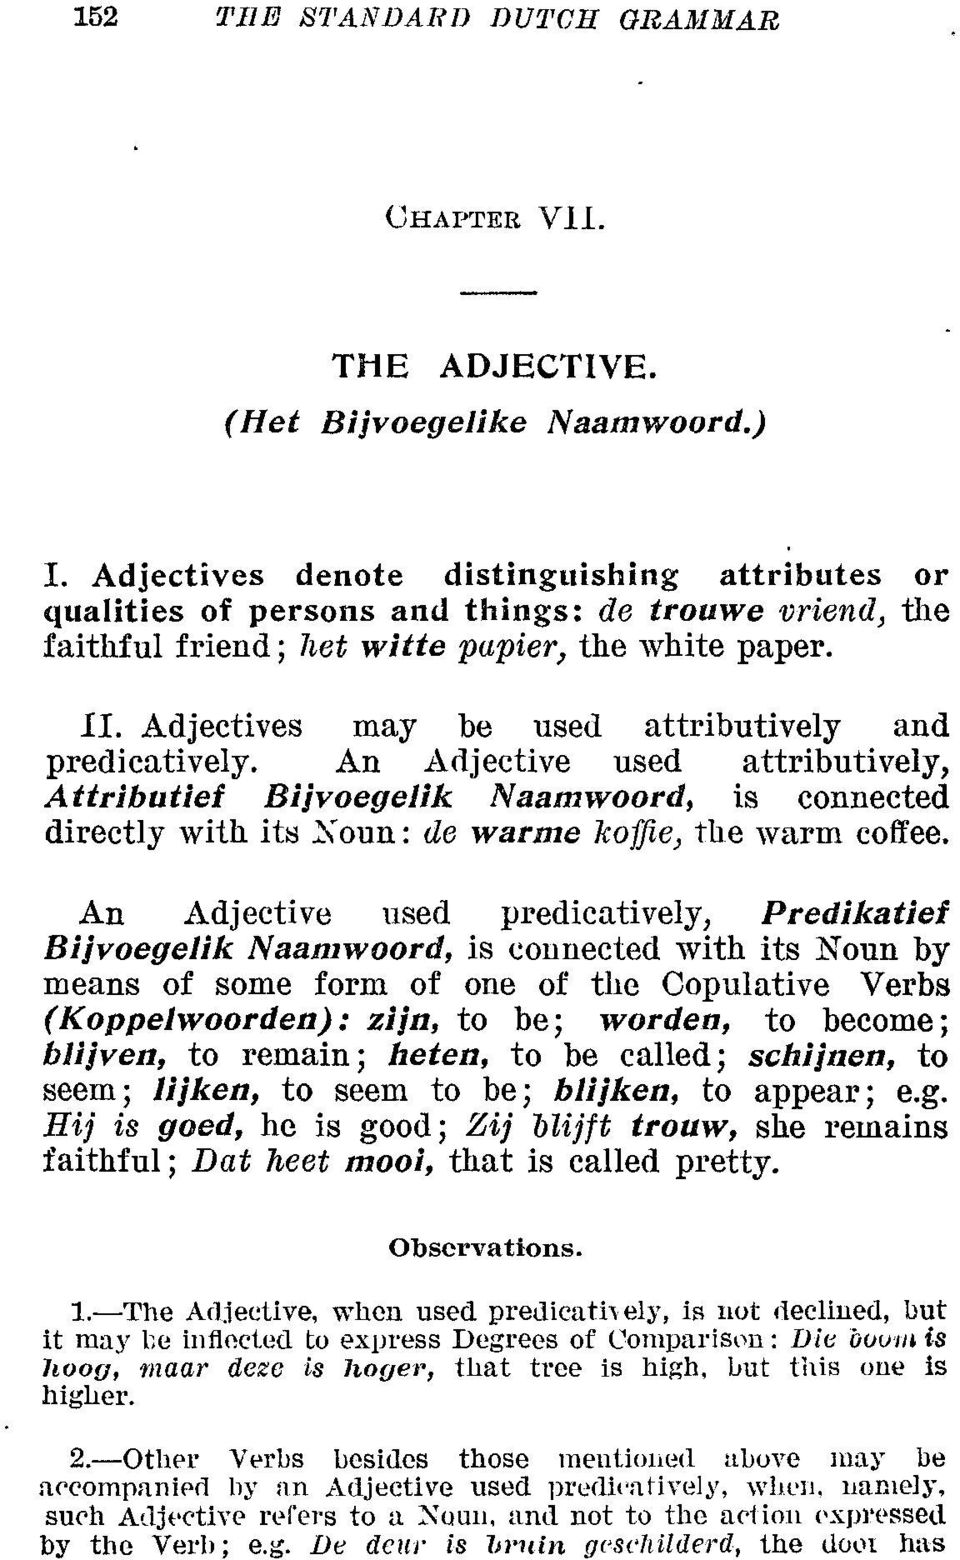 Adjectives may be used attributively and predicatively. An Arljective used attributively, Attributief Bijvoegelik Naamwoord, is connected directly with its X oun: de war me koj]ie, the warm coffee.